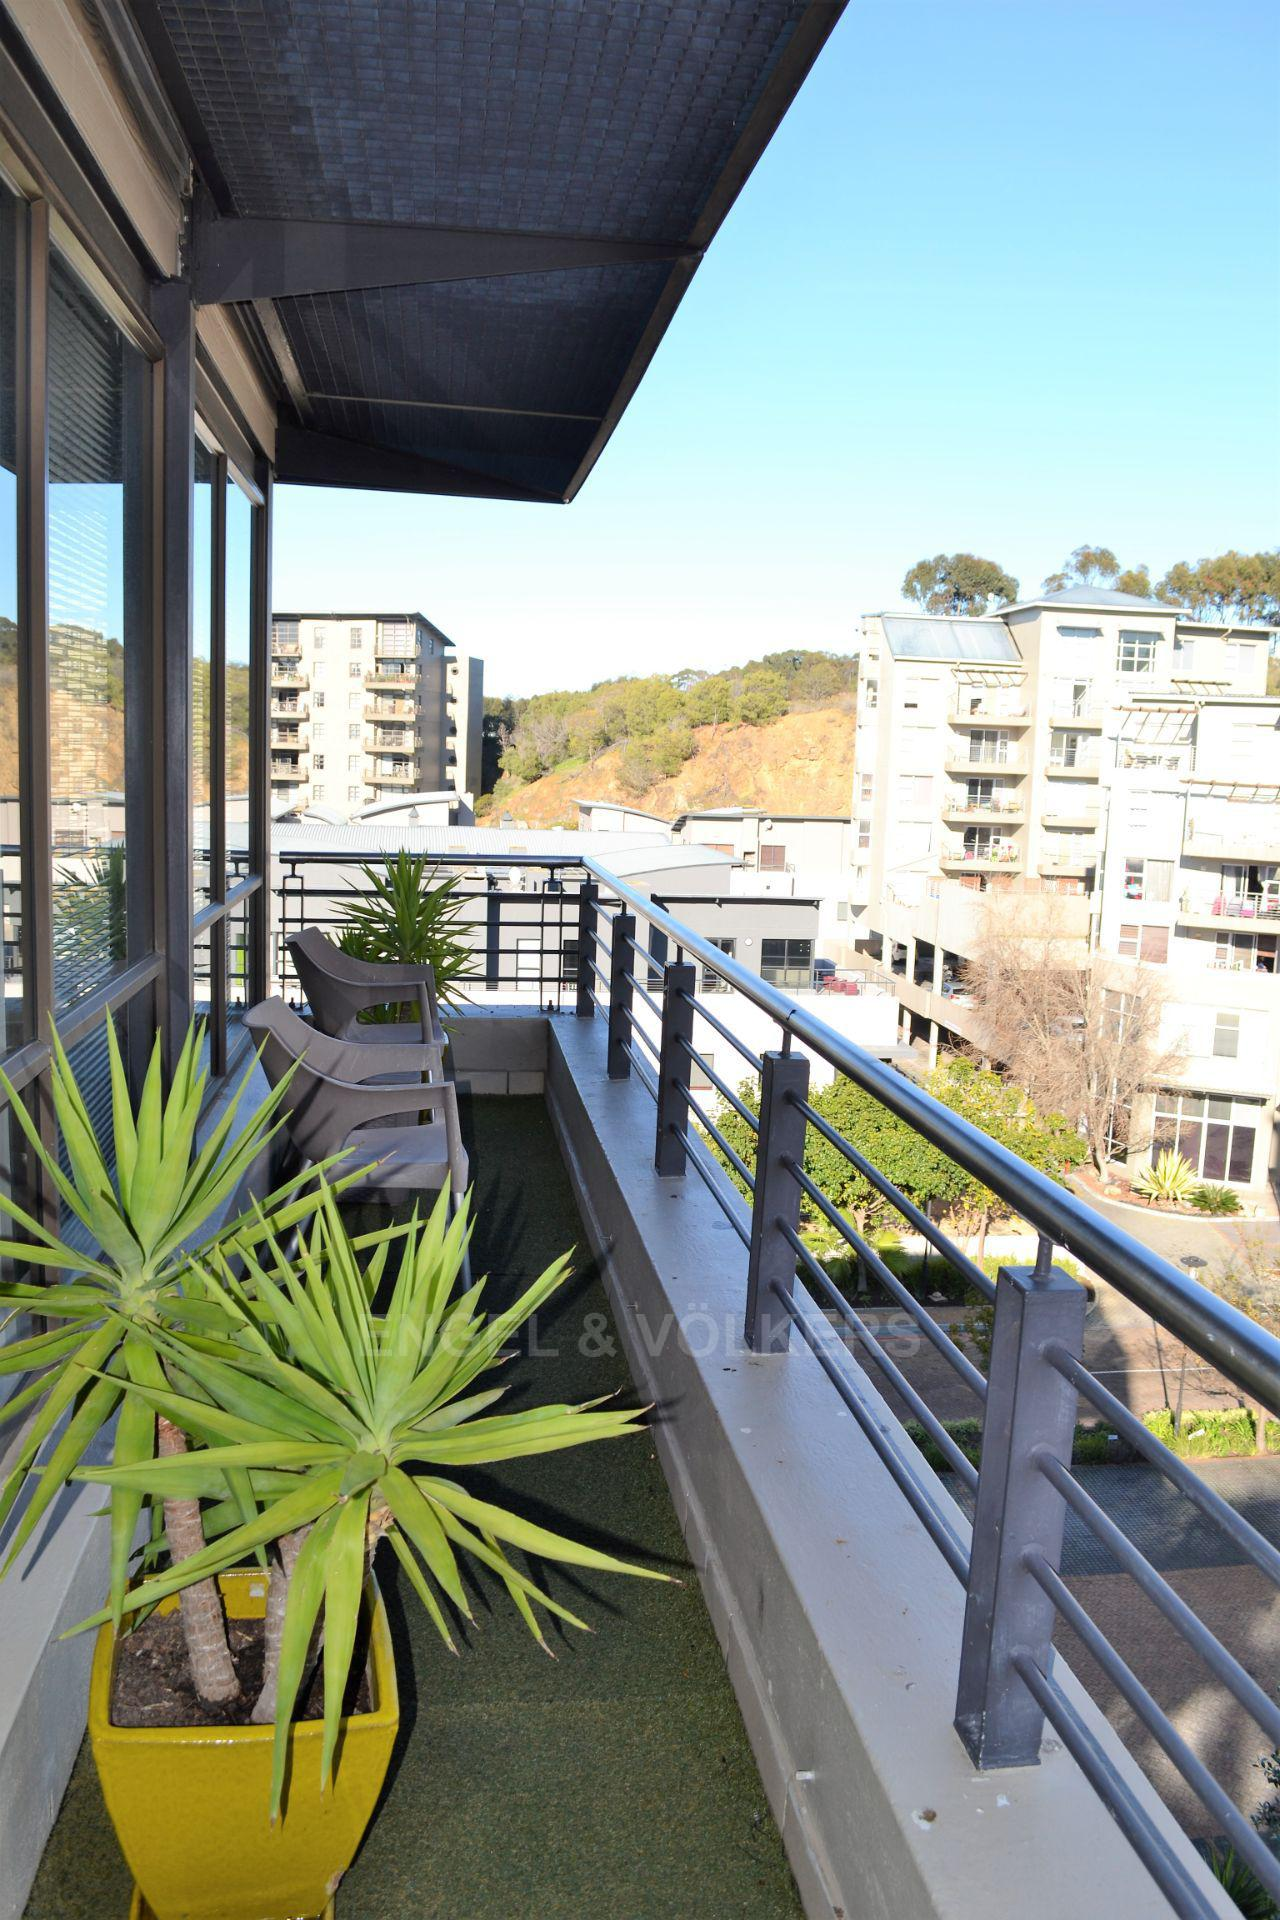 Investment / Residential investment in Tyger Valley